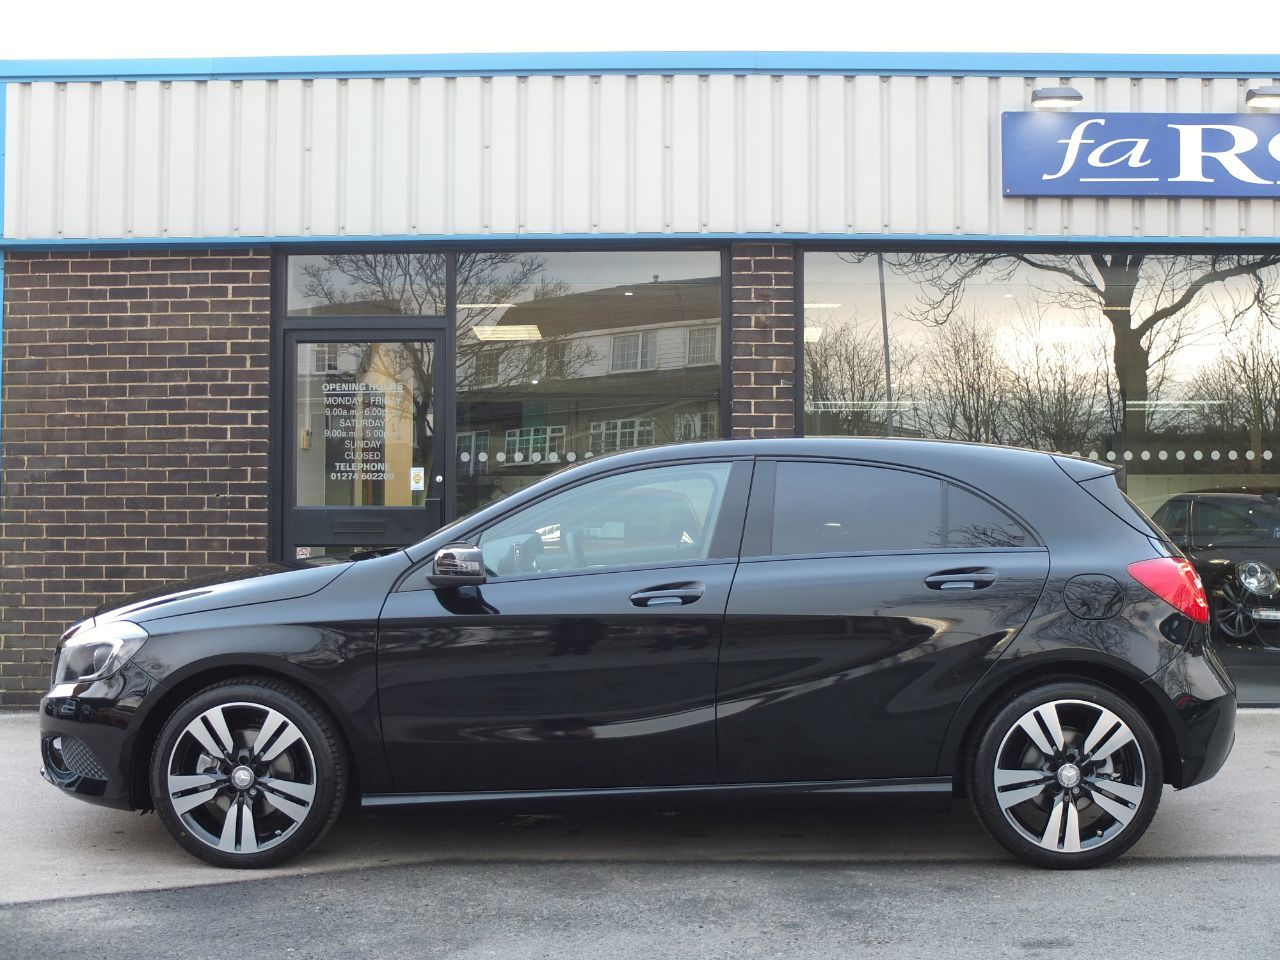 Mercedes-Benz A Class A200 [2.1] CDI Sport Auto. Night Package, Delivery Miles Hatchback Diesel Cosmos Black Metallic